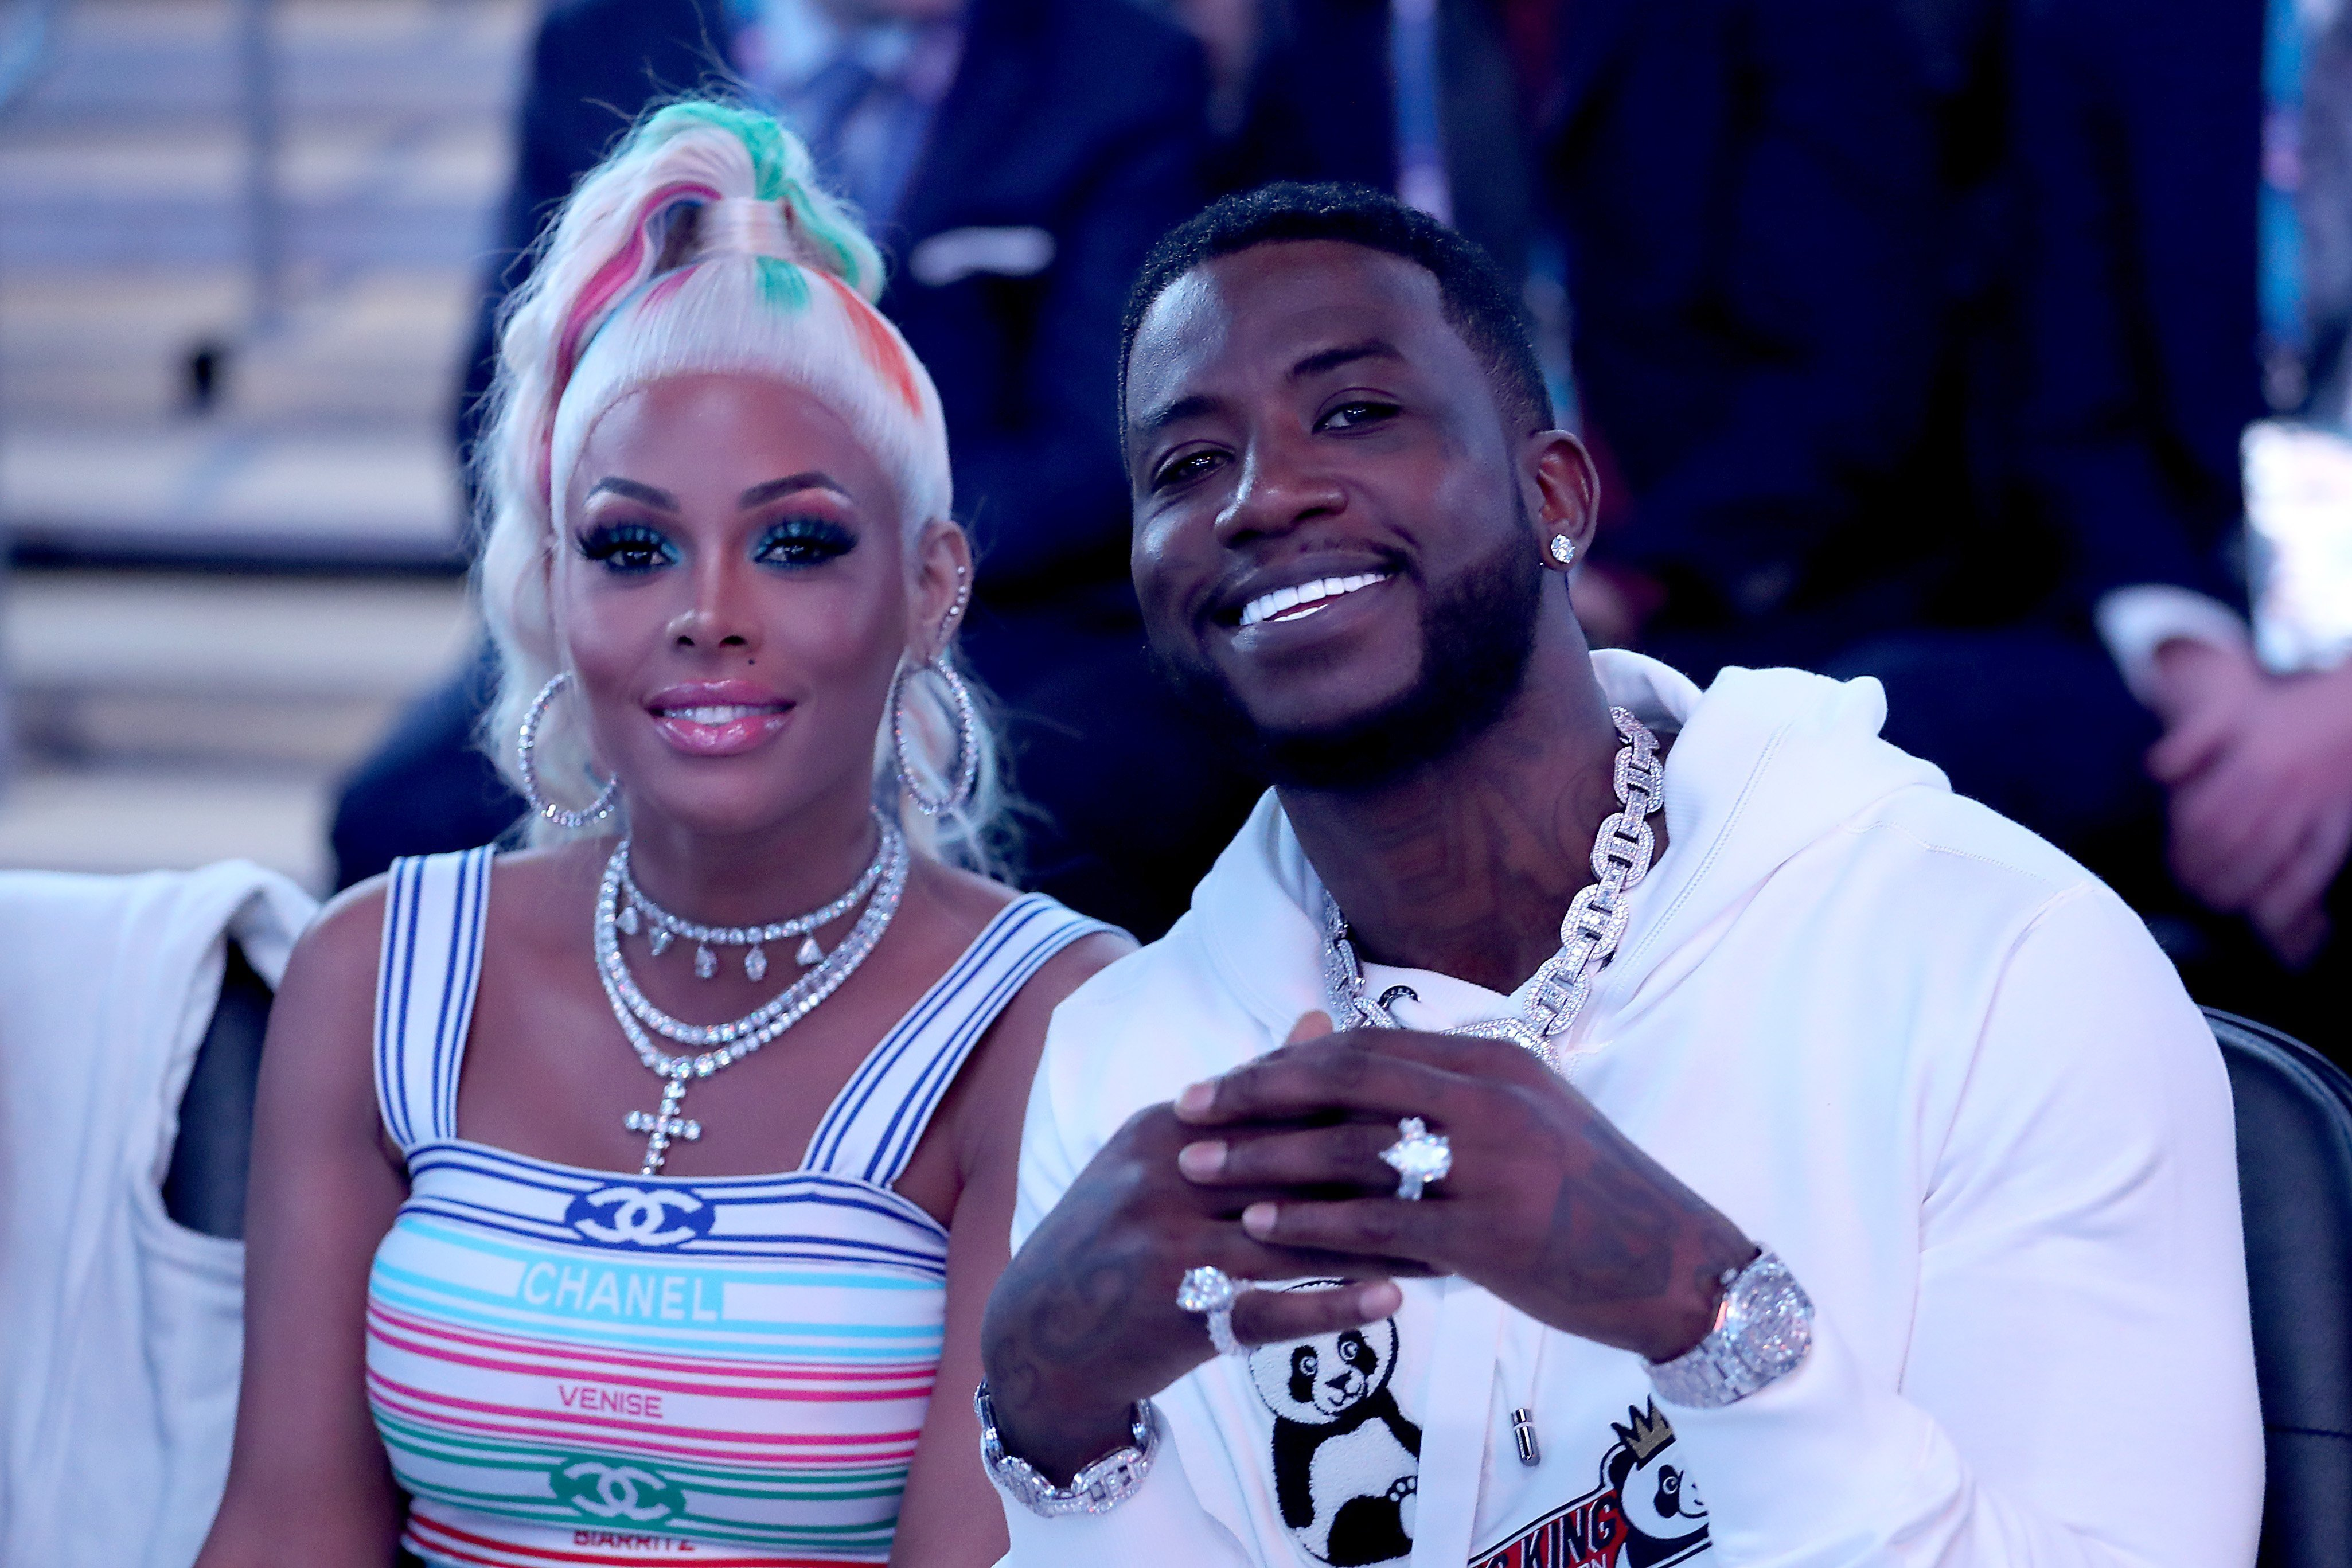 Gucci Mane and Keyshia Ka'oir at the NBA All-Star game on February 17, 2019 l Source: Getty Images